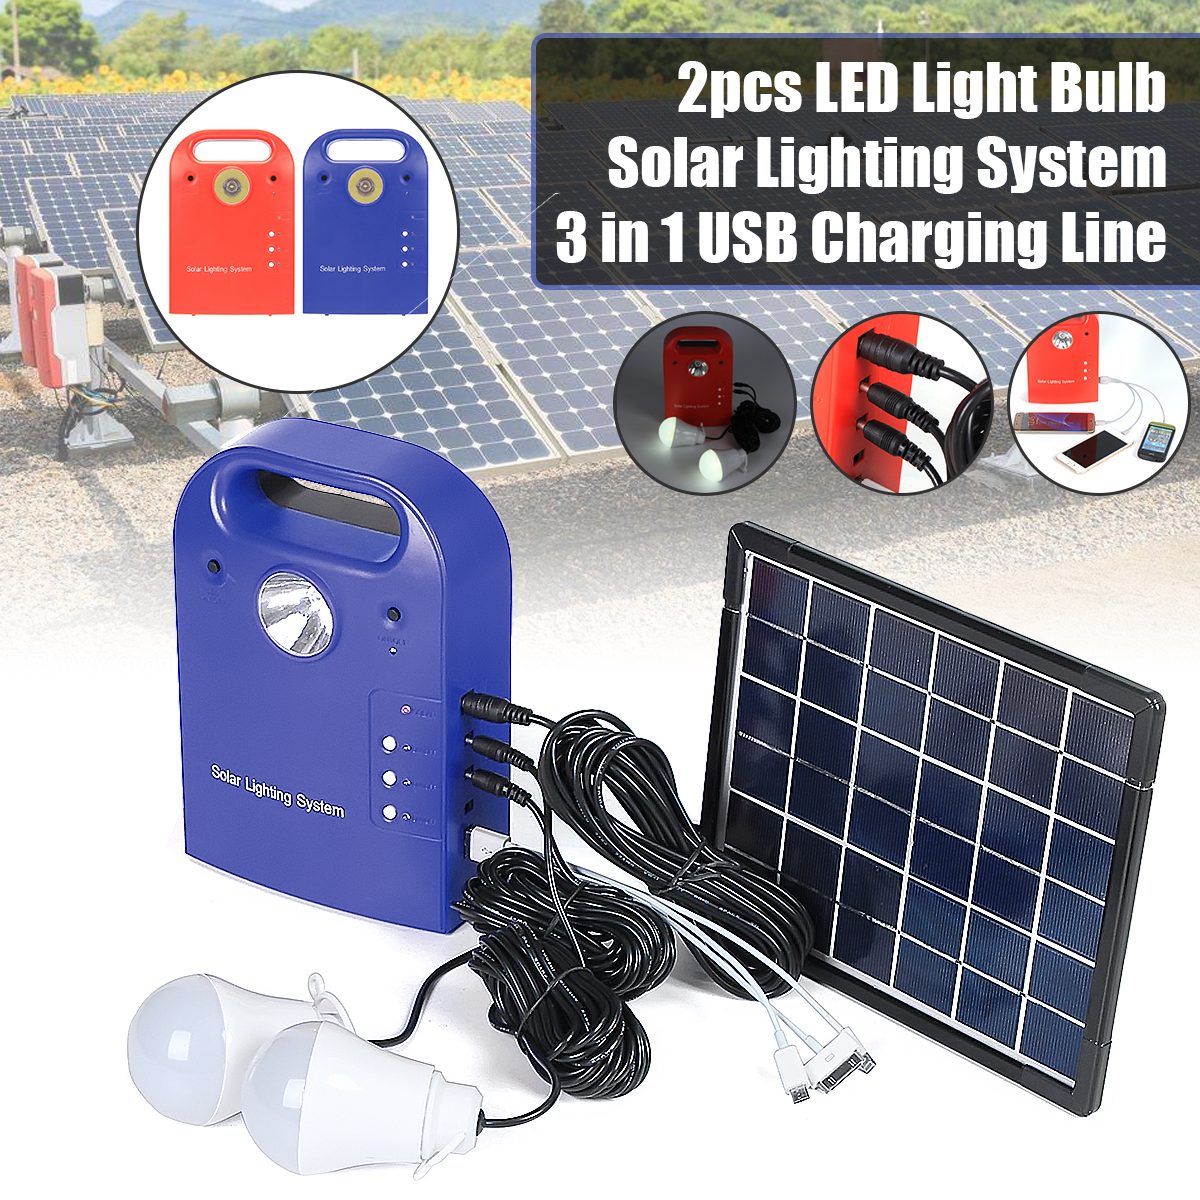 Portable Small DC Solar Panels Charging Generator Power with solar generator Highlight LED Light Bulb for Home Outdoor Tourism Picnic Camping